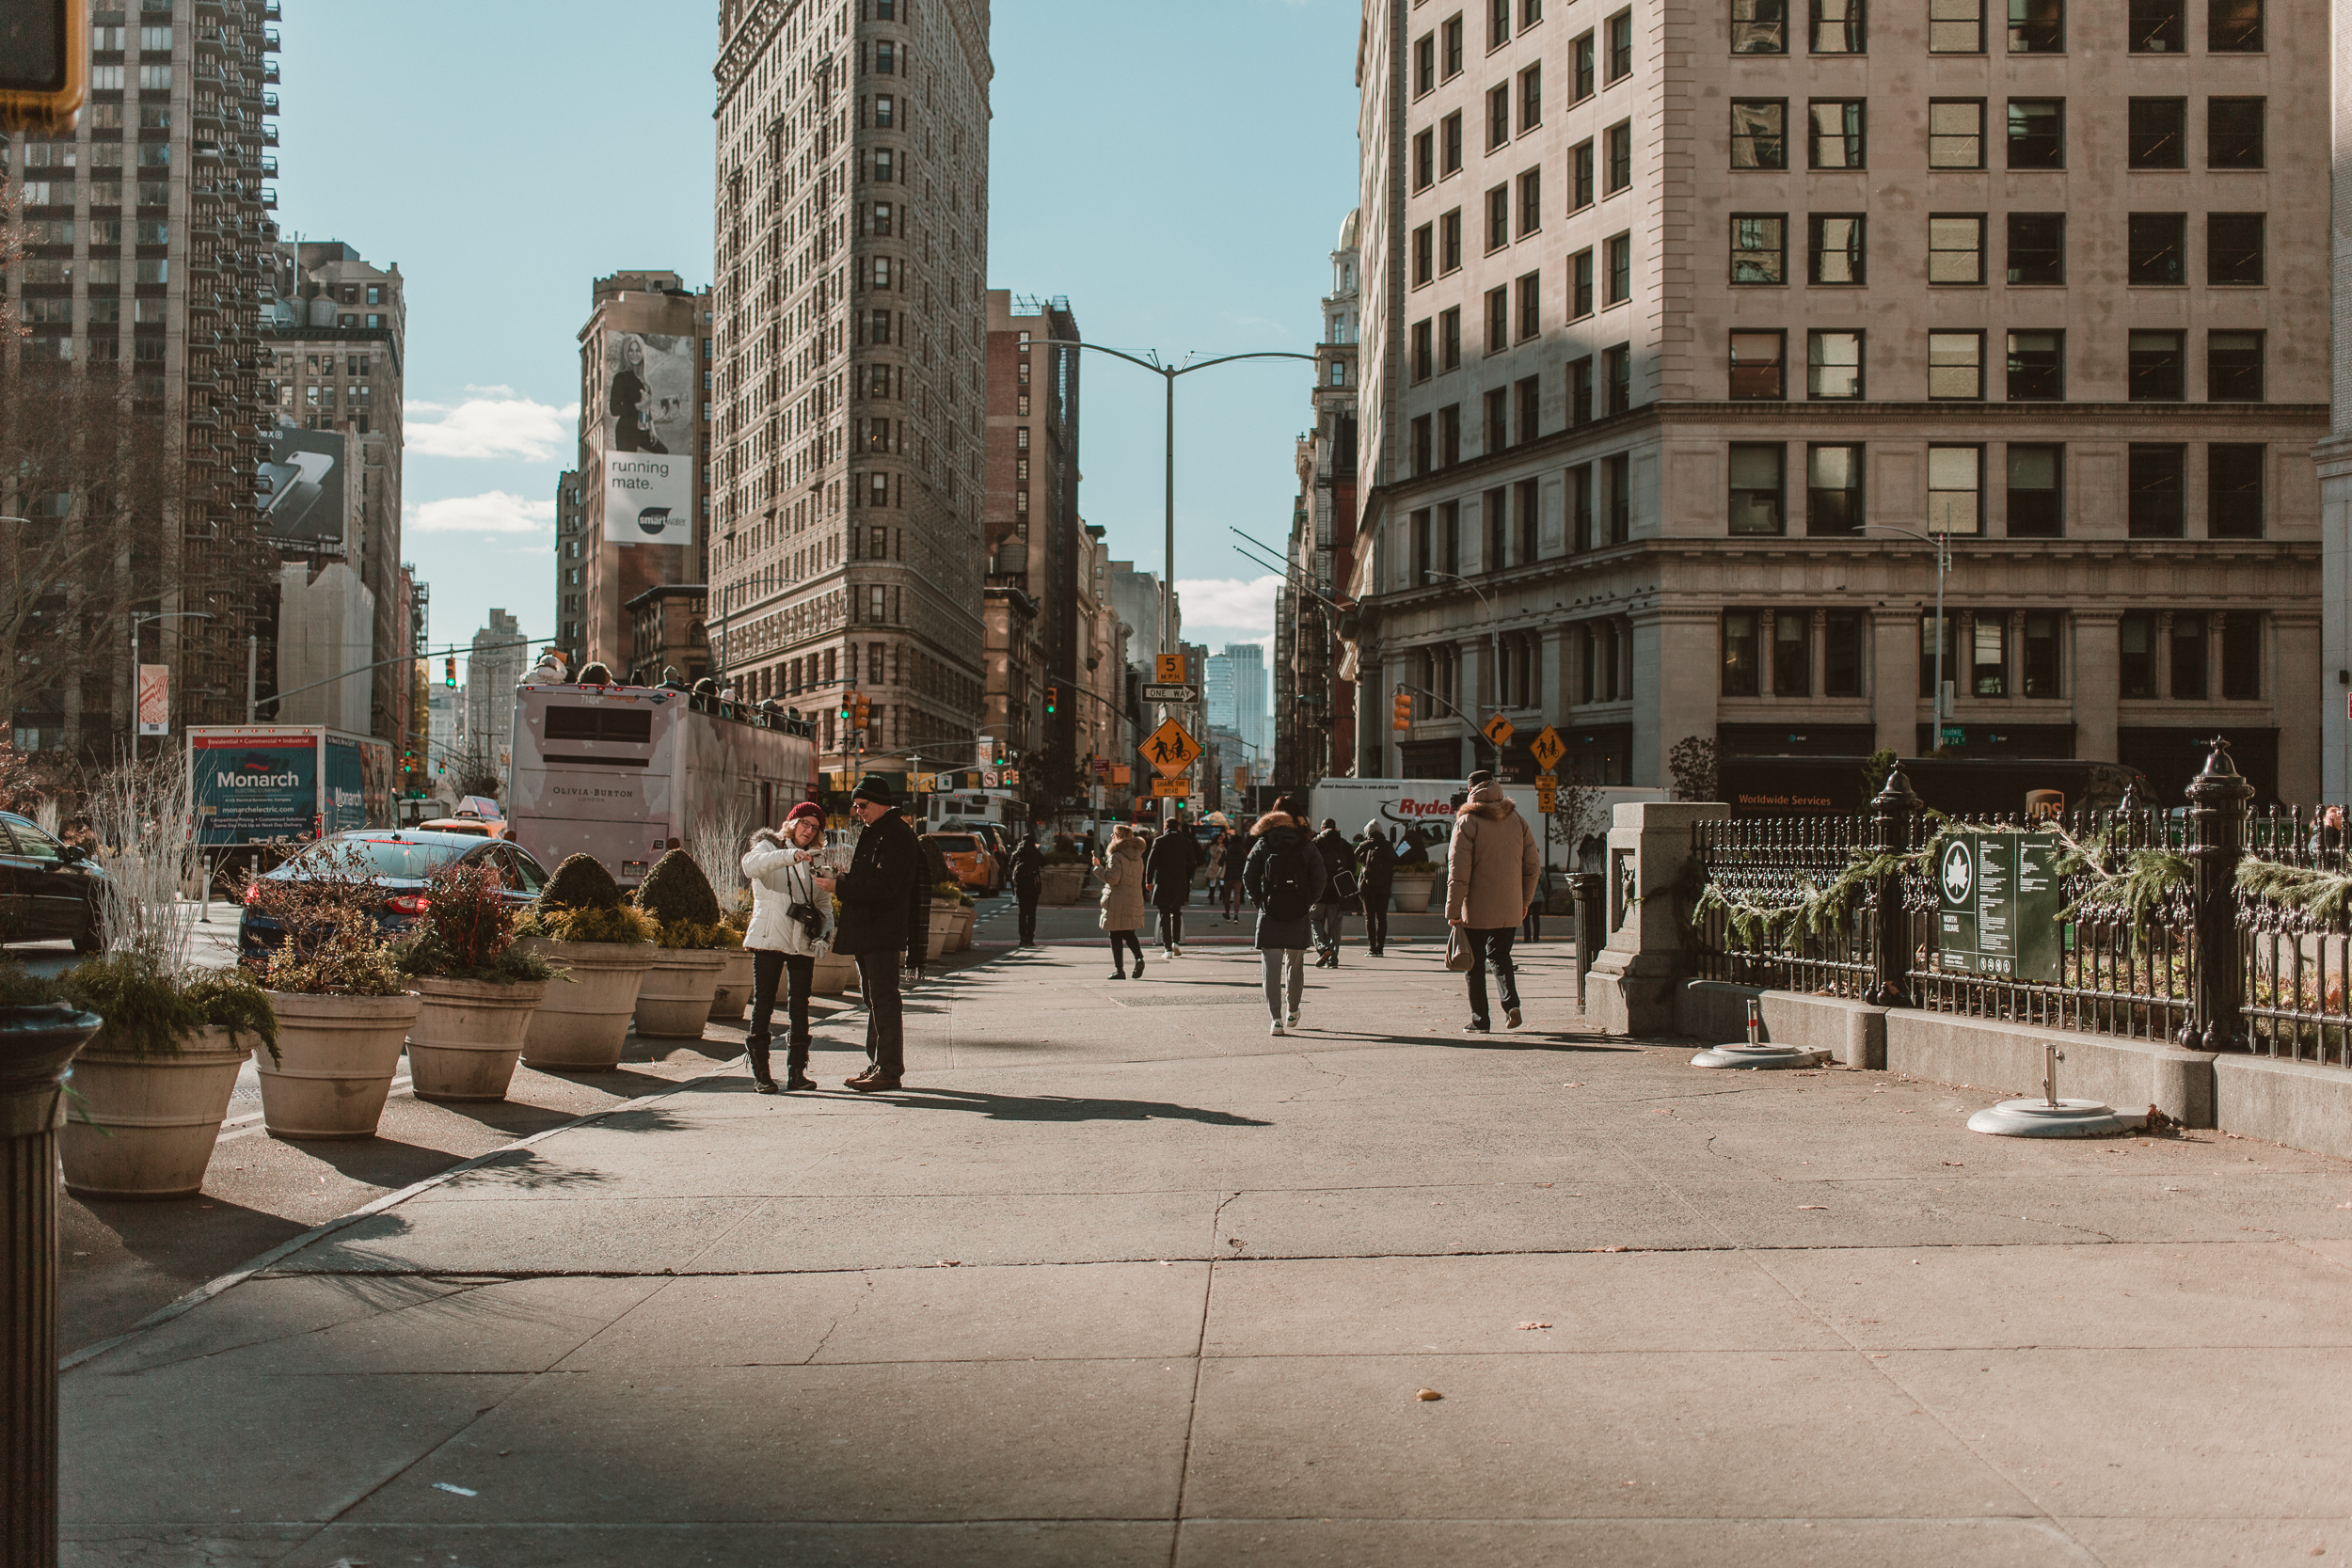 PLACES_NYC_071218_39.jpg